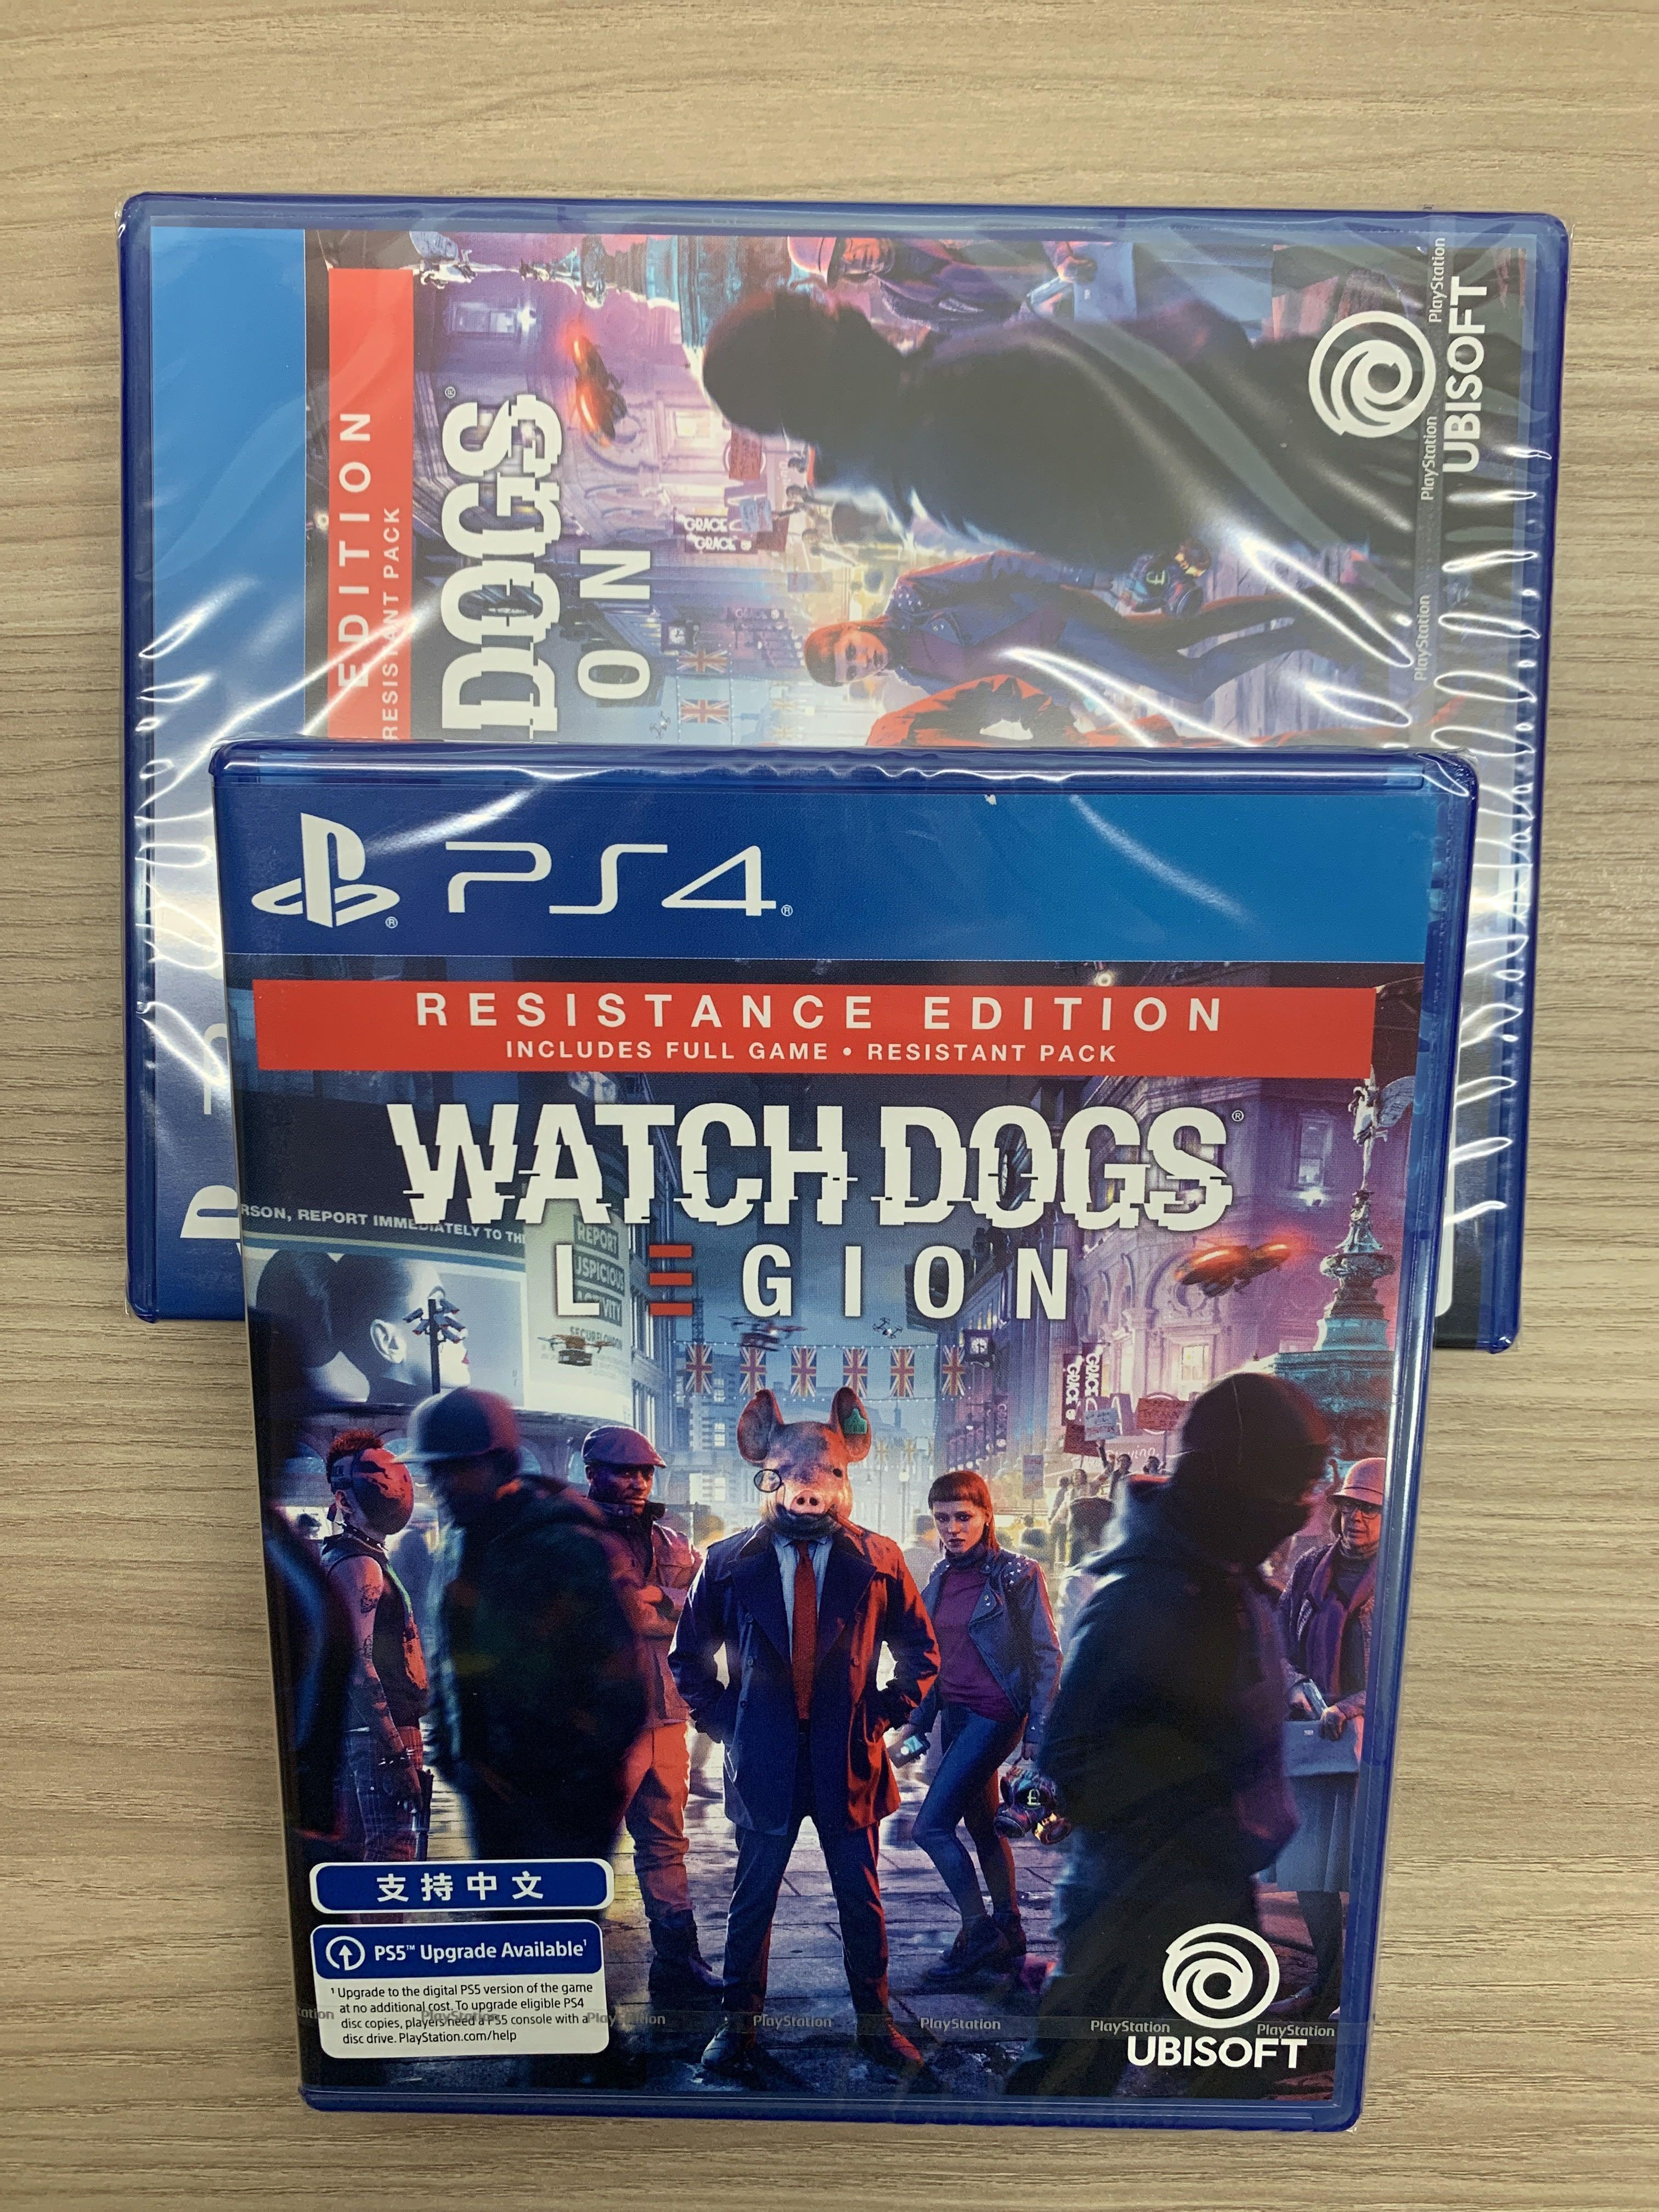 Ps4 Ps5 Game Watch Dogs Legion Toys Games Video Gaming Video Games On Carousell